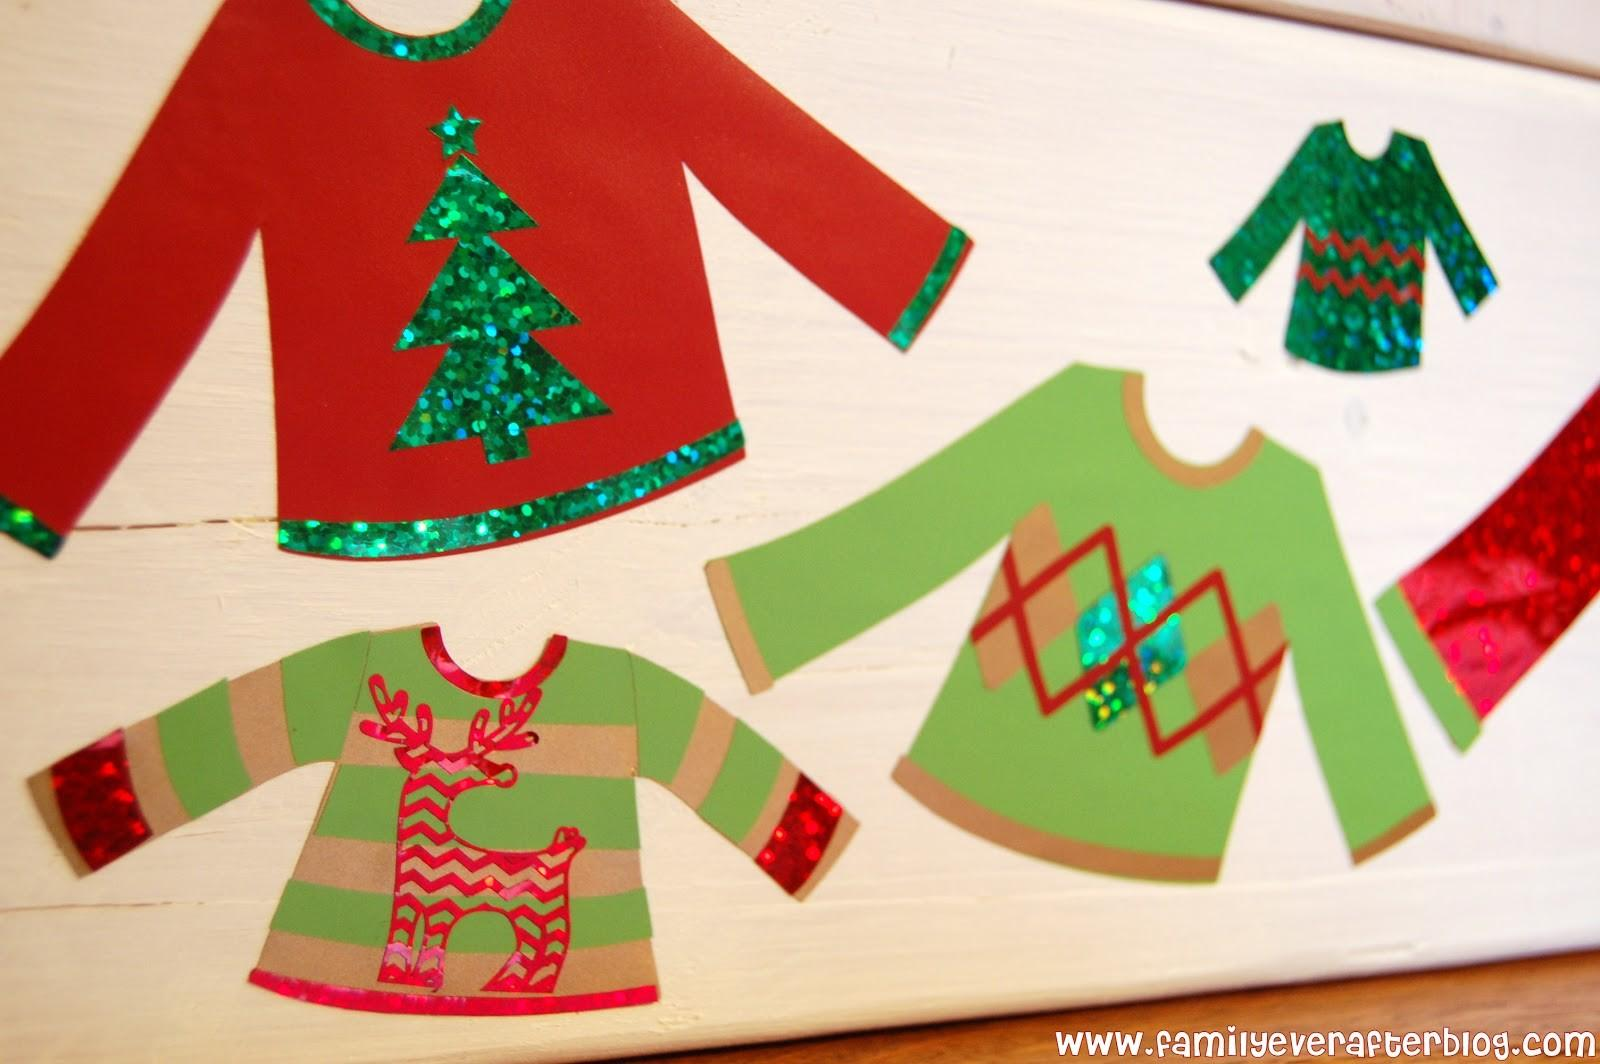 Family Ever After Ugly Sweater Party Ideas